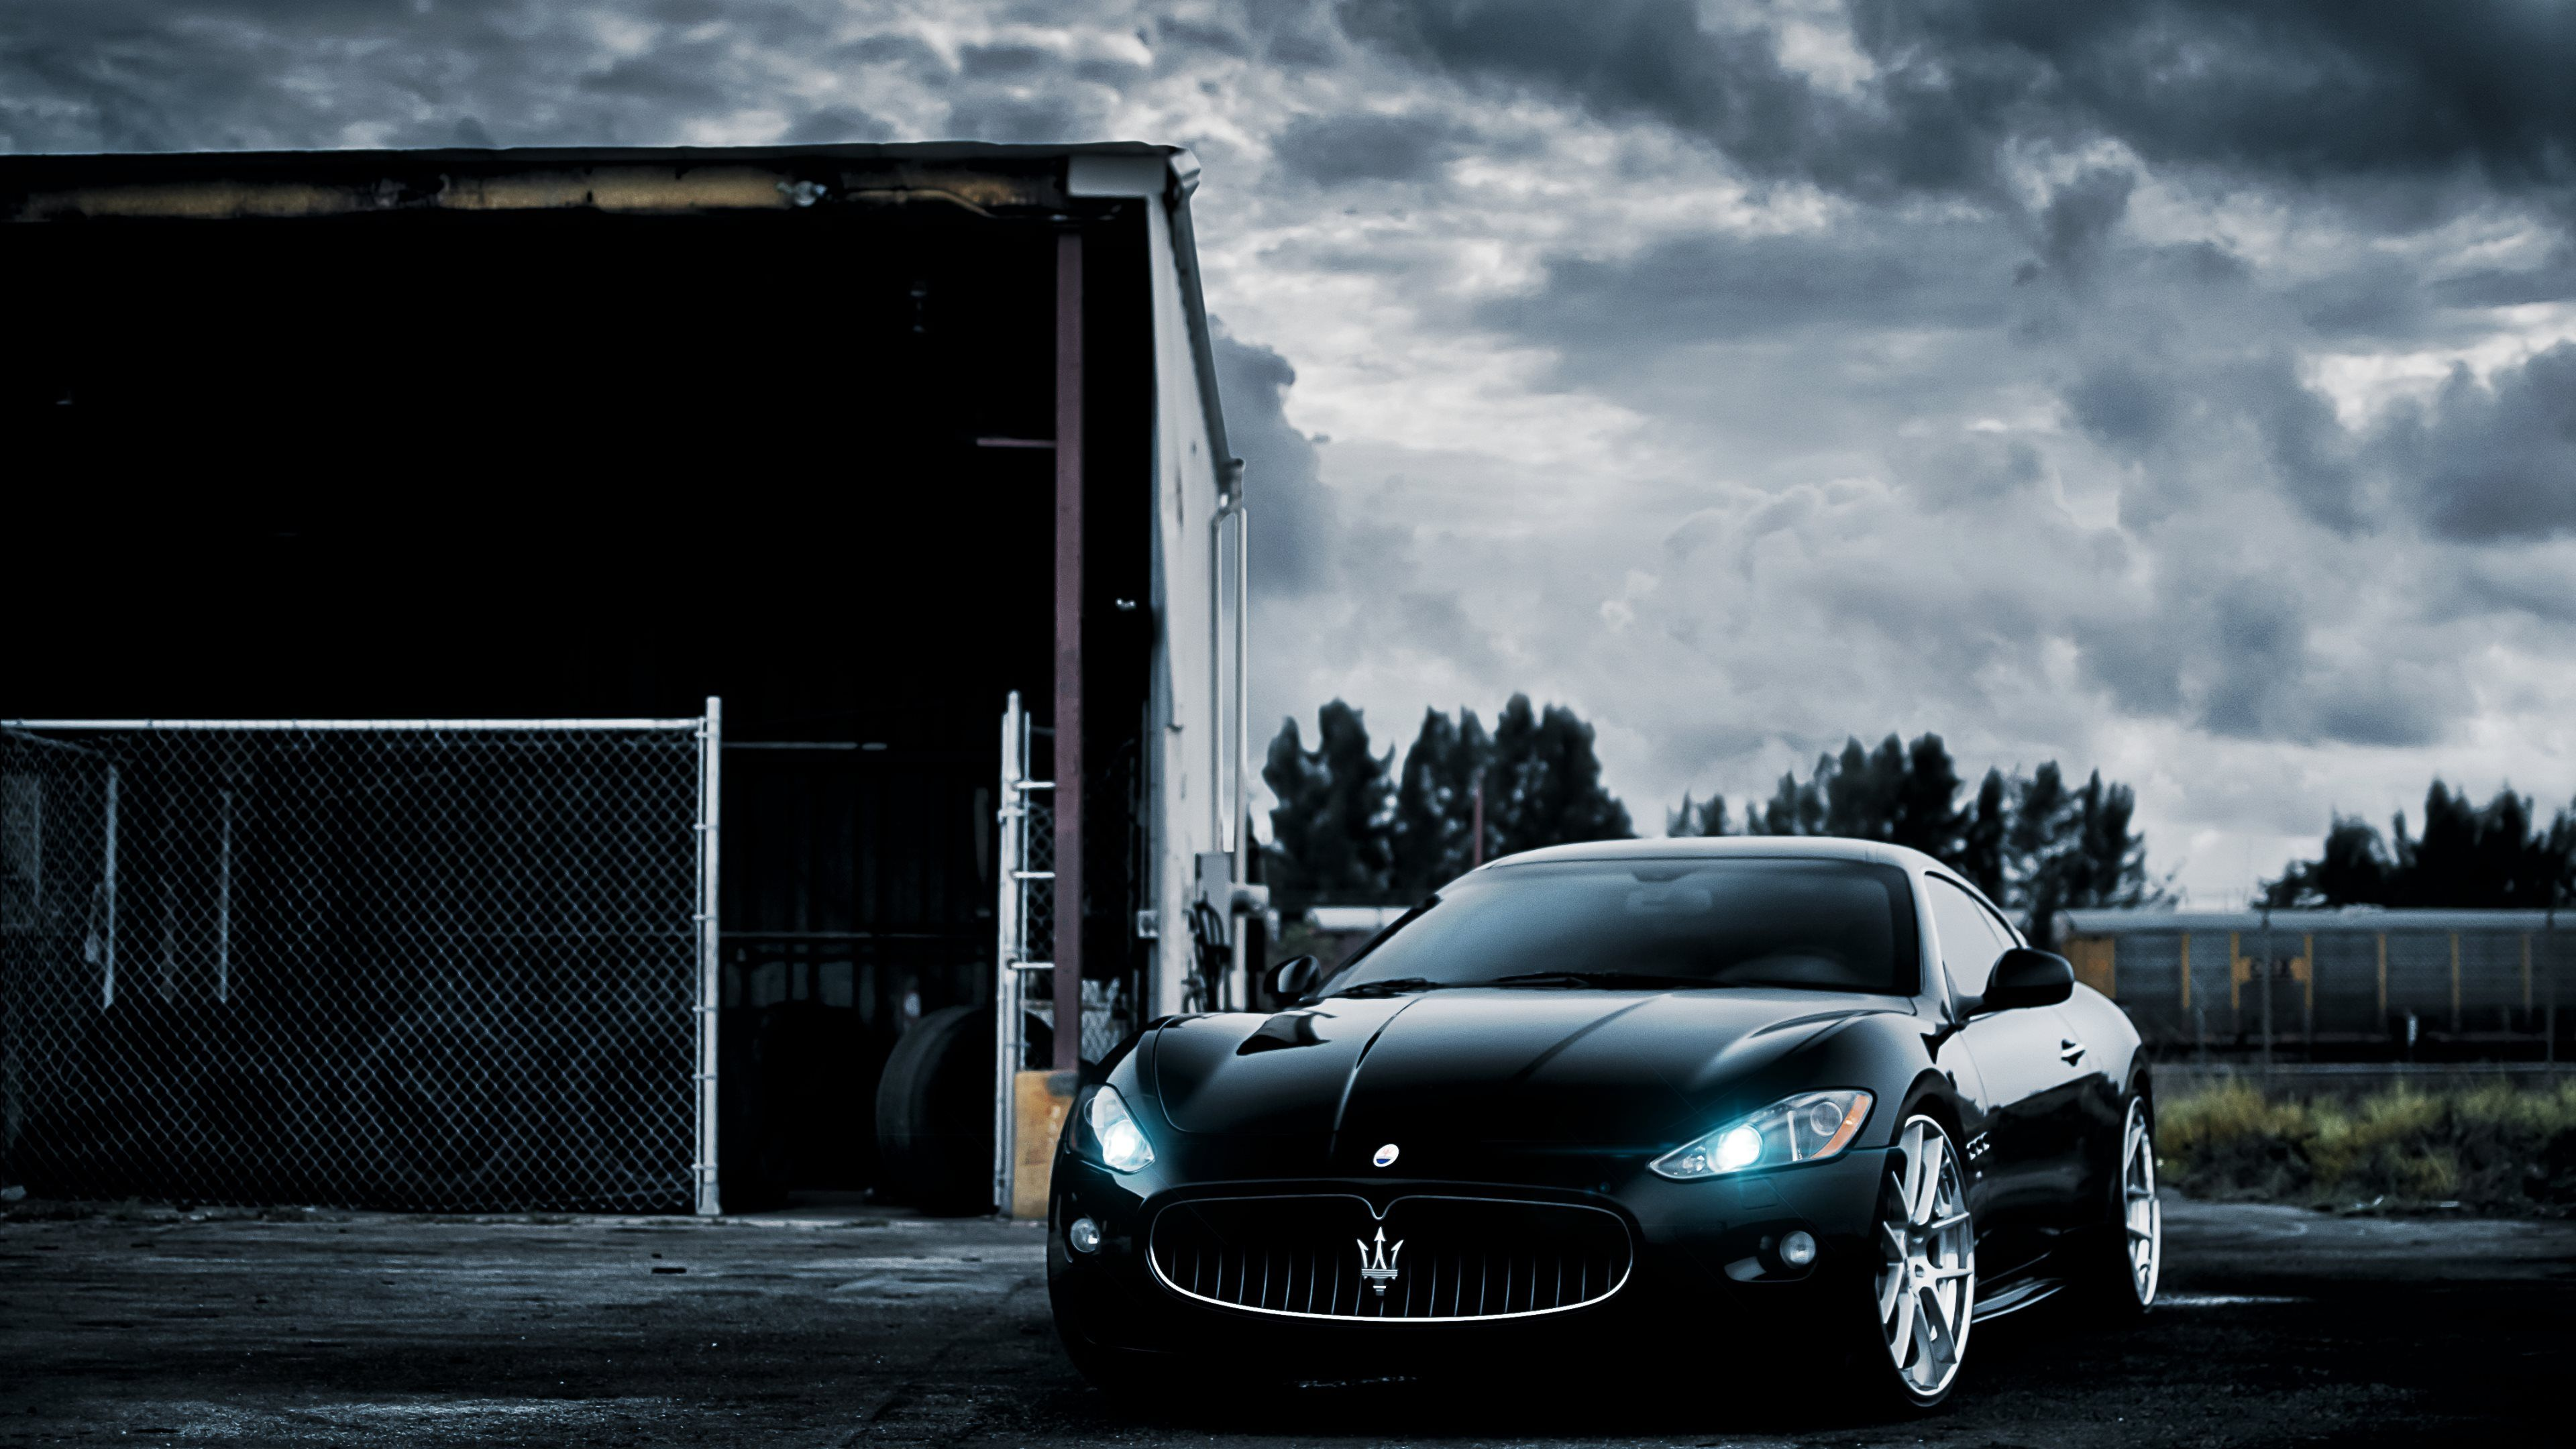 Merveilleux Full HD P Maserati Wallpapers HD Desktop Backgrounds